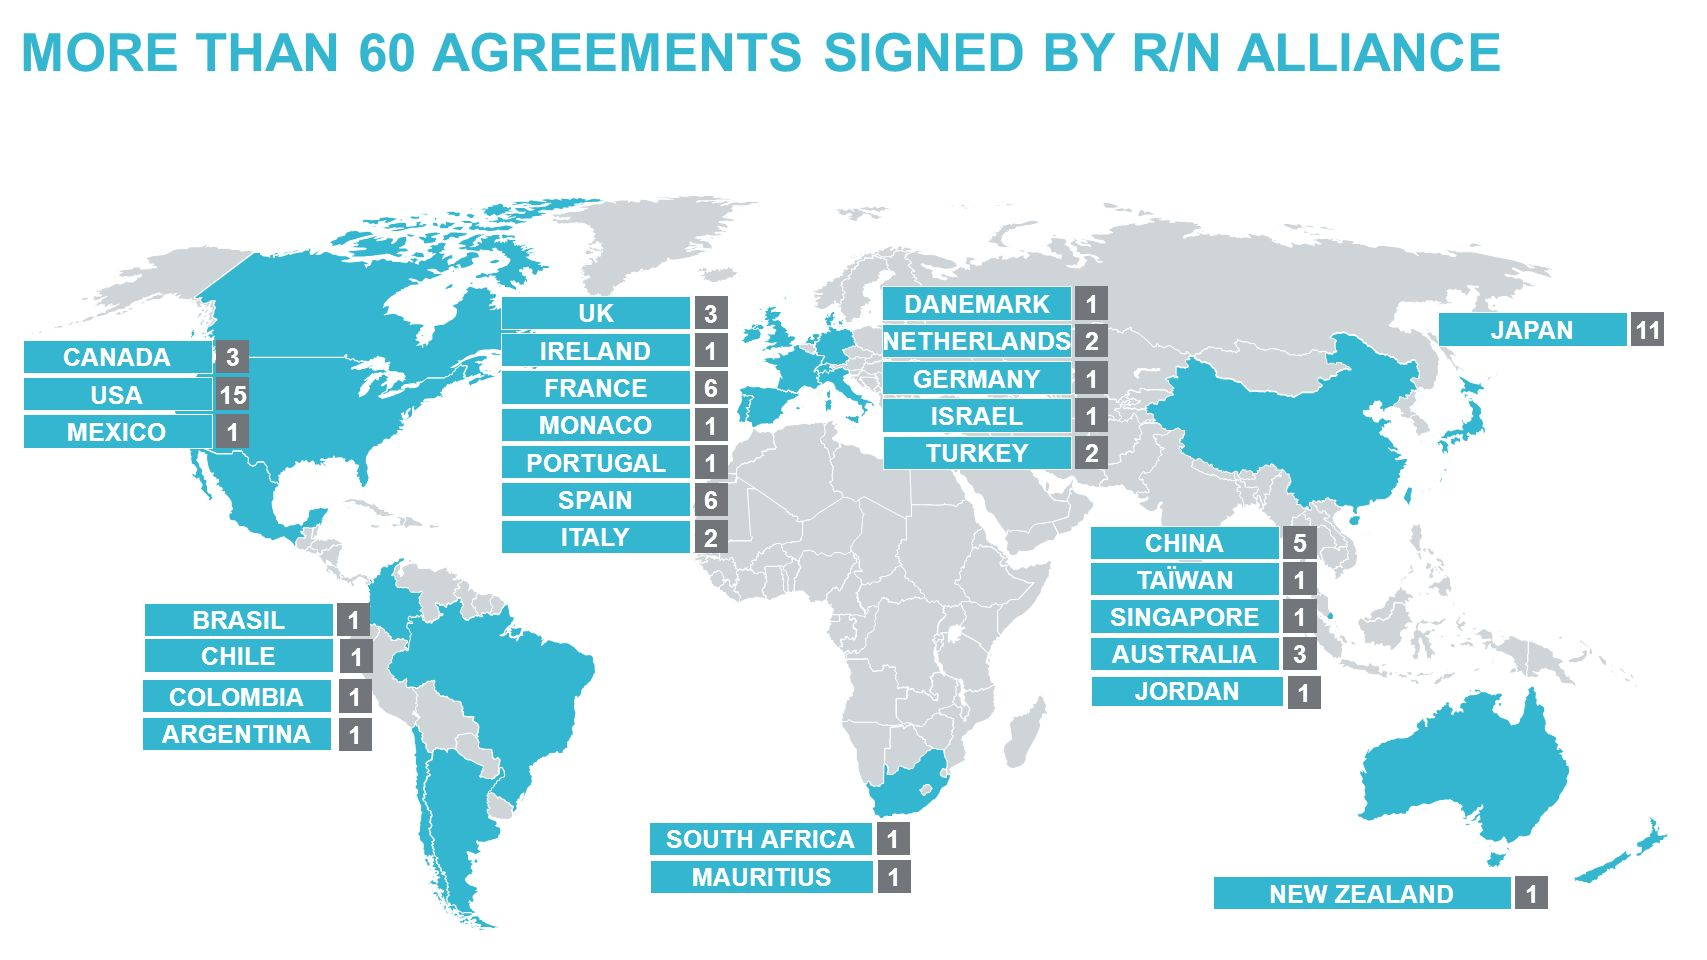 UK IRELAND FRANCE MONACO PORTUGAL SPAIN CANADA USA MEXICO NEW ZEALAND JAPAN DANEMARK NETHERLANDS GERMANY ISRAEL BRASIL 1 ITALY 2 MORE THAN 60 AGREEMENTS SIGNED BY R/N ALLIANCE CHINA SINGAPORE AUSTRALIA TAÏWAN 1 TURKEY 2 SOUTH AFRICA 1 MAURITIUS 1 JORDAN 1 ARGENTINA COLOMBIA CHILE 1 1 1